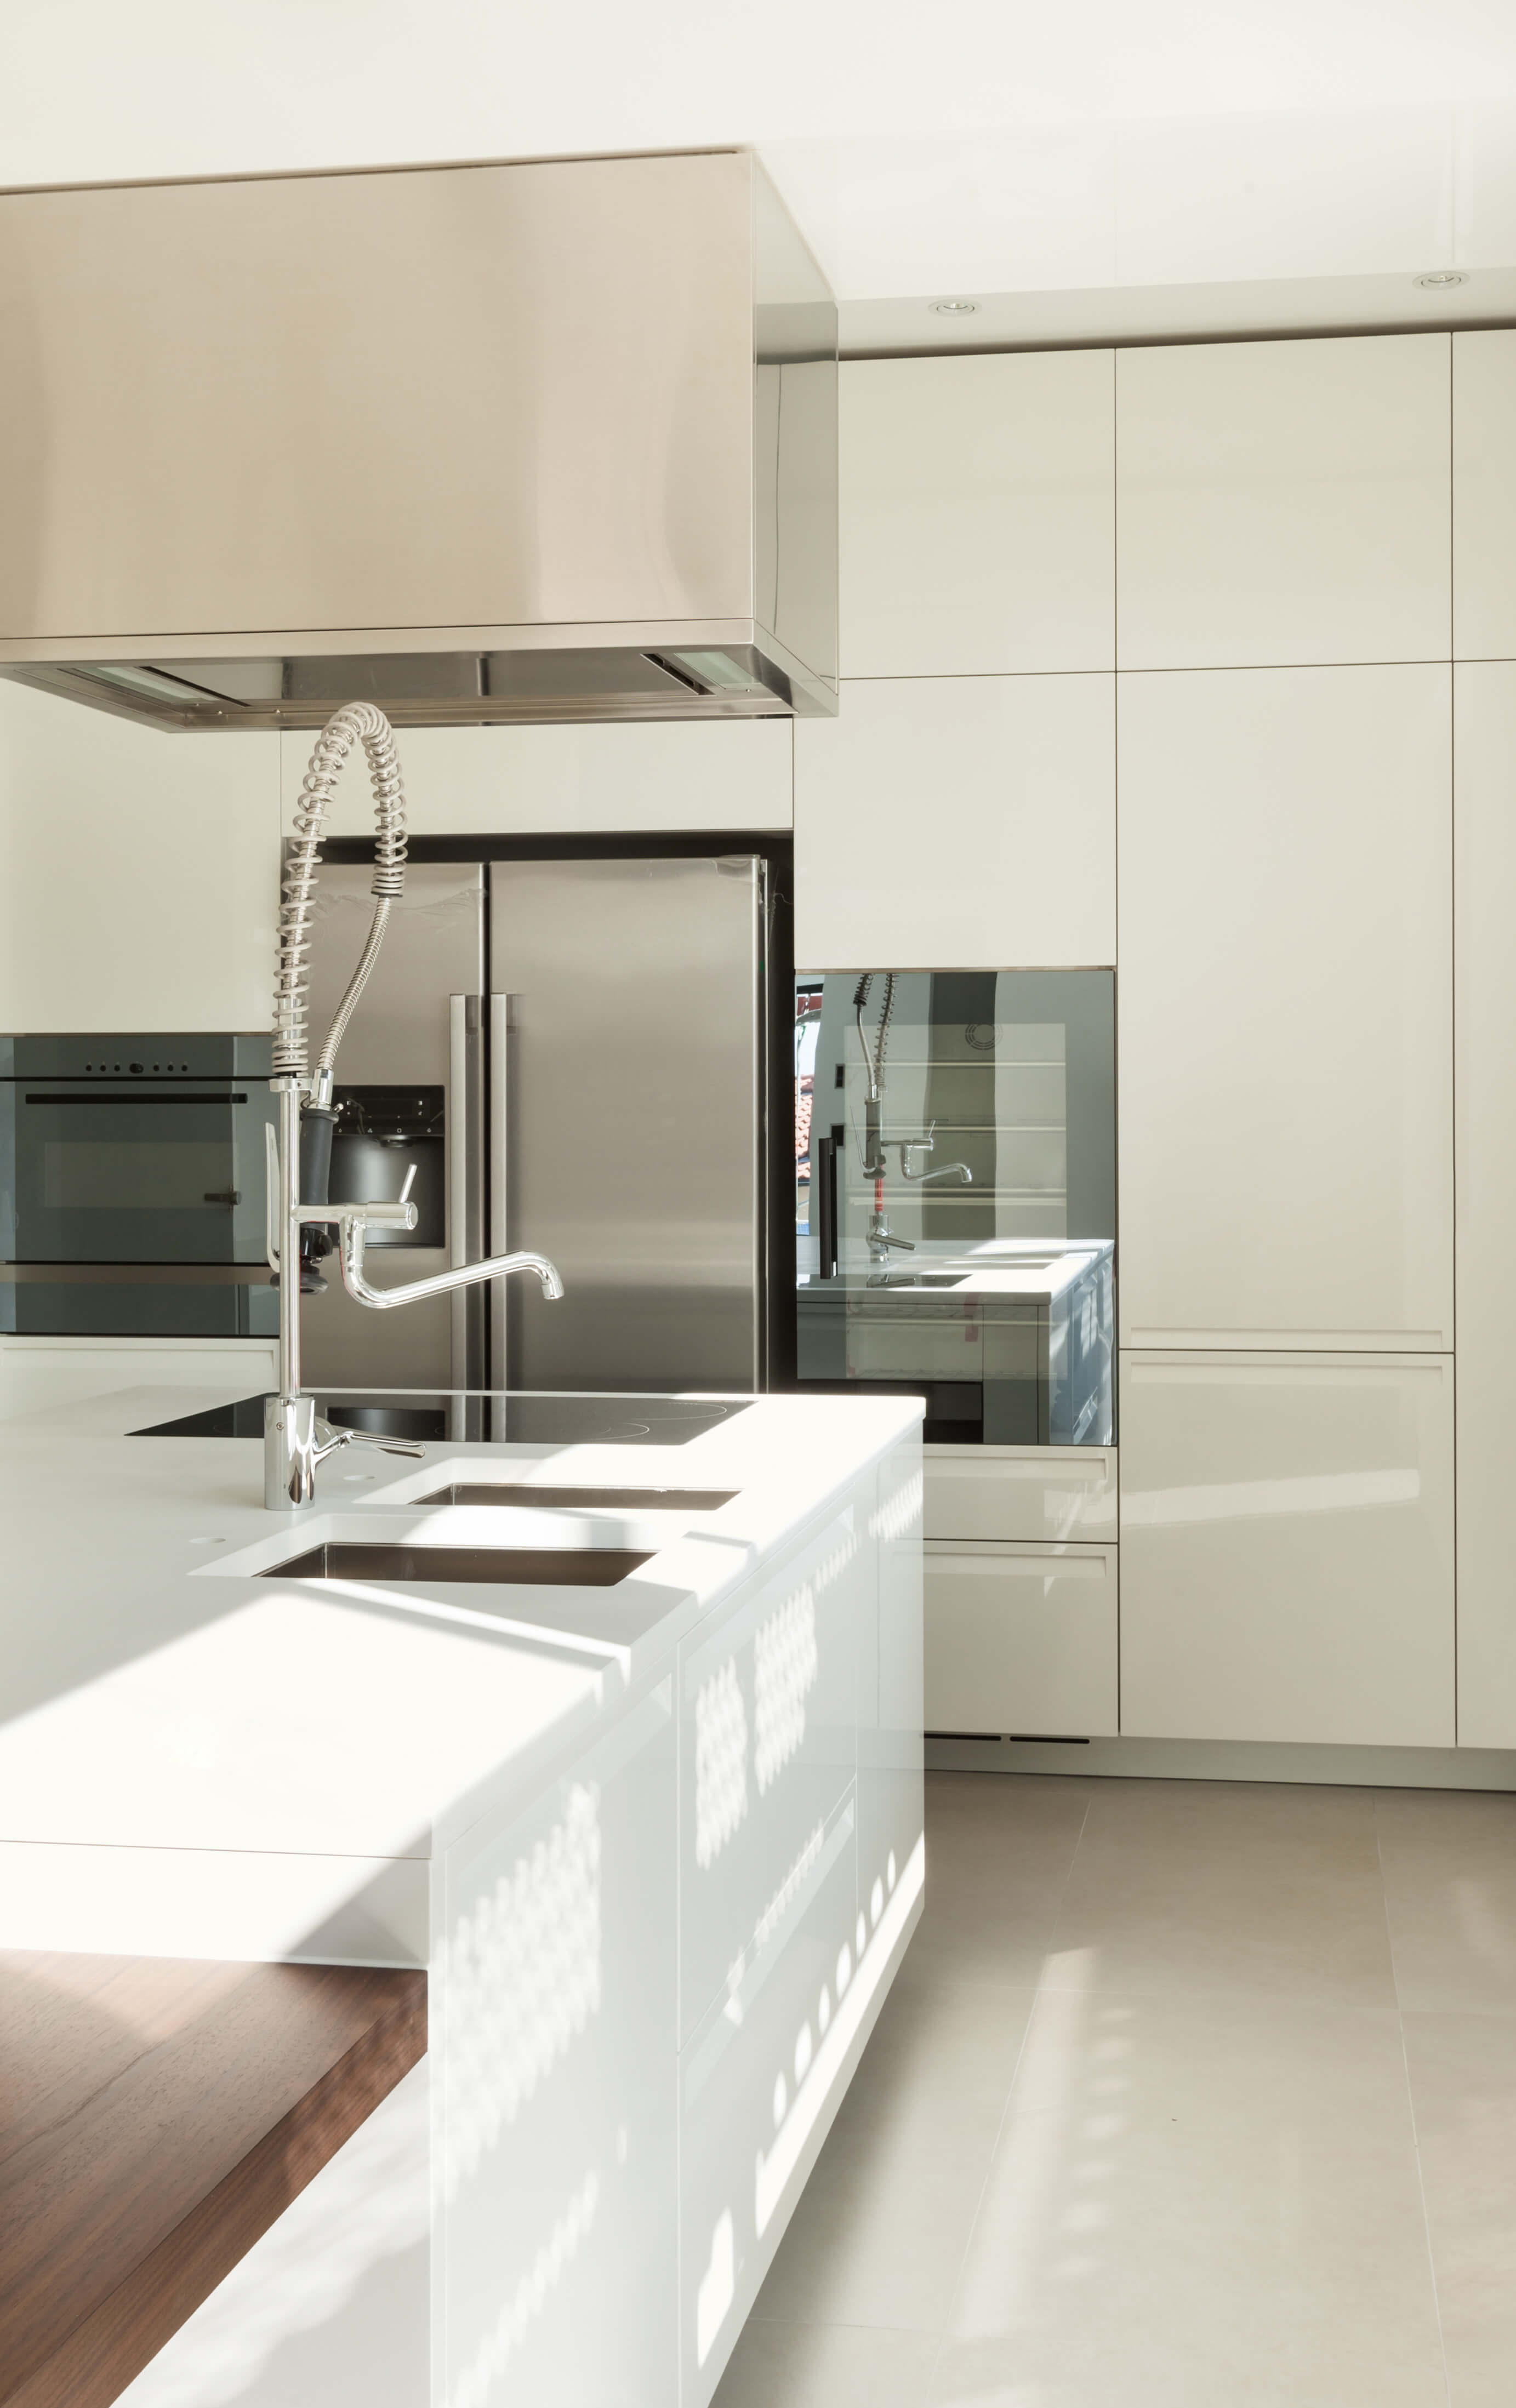 kitchen featuring glossy white cabinetry and countertops over beige